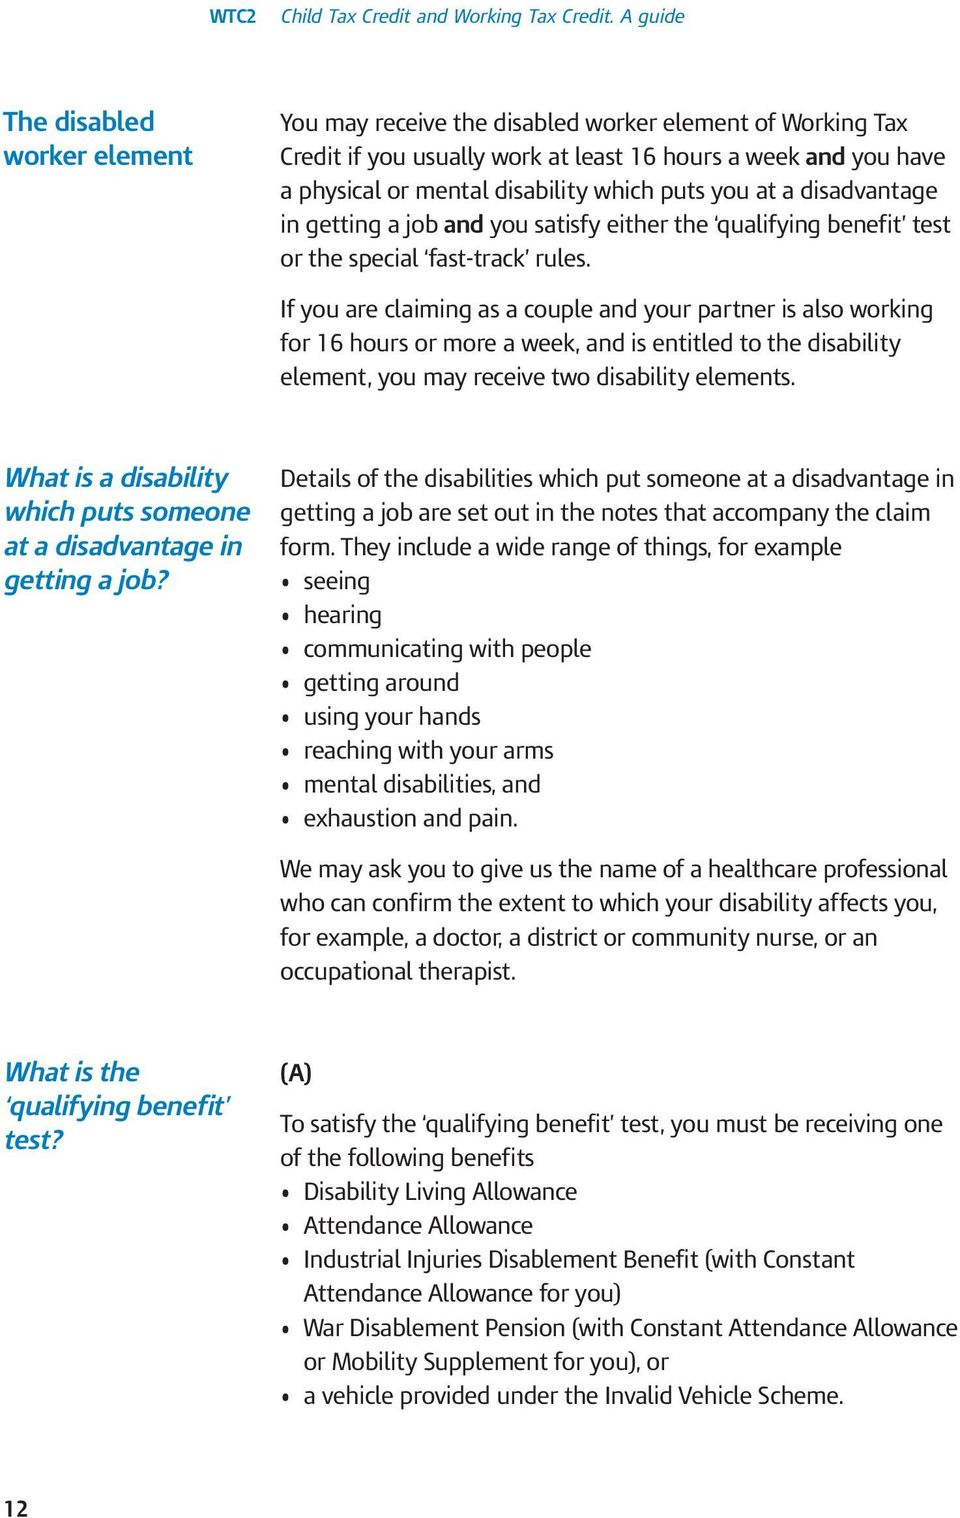 If you are claiming as a couple and your partner is also working for 16 hours or more a week, and is entitled to the disability element, you may receive two disability elements.